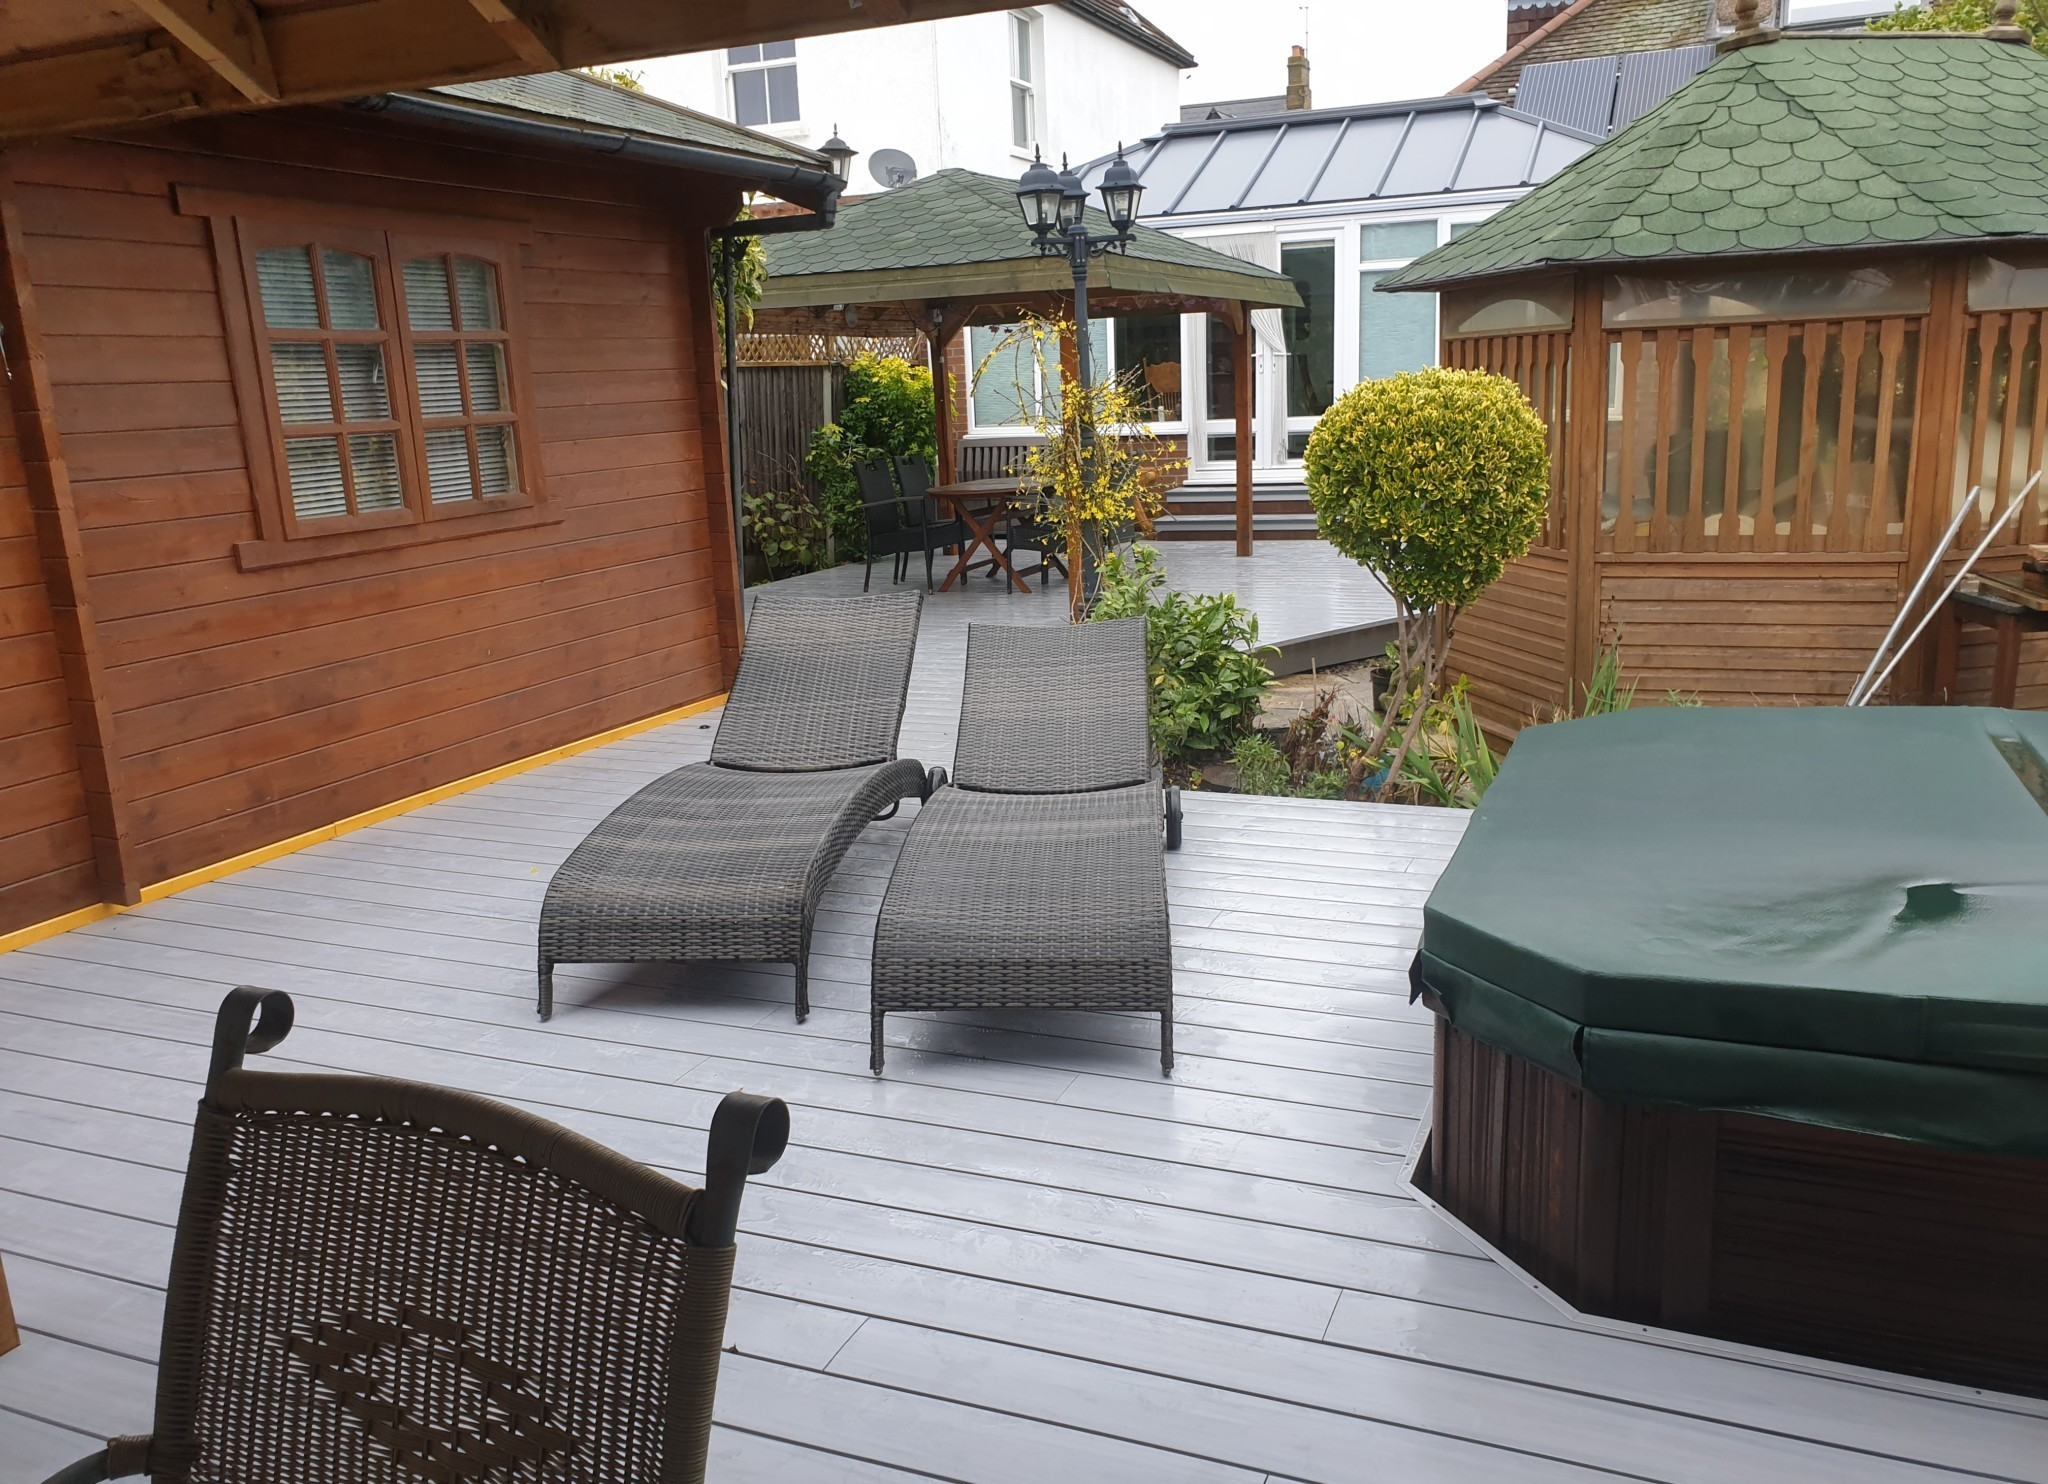 residential decking in sussex with hot tub